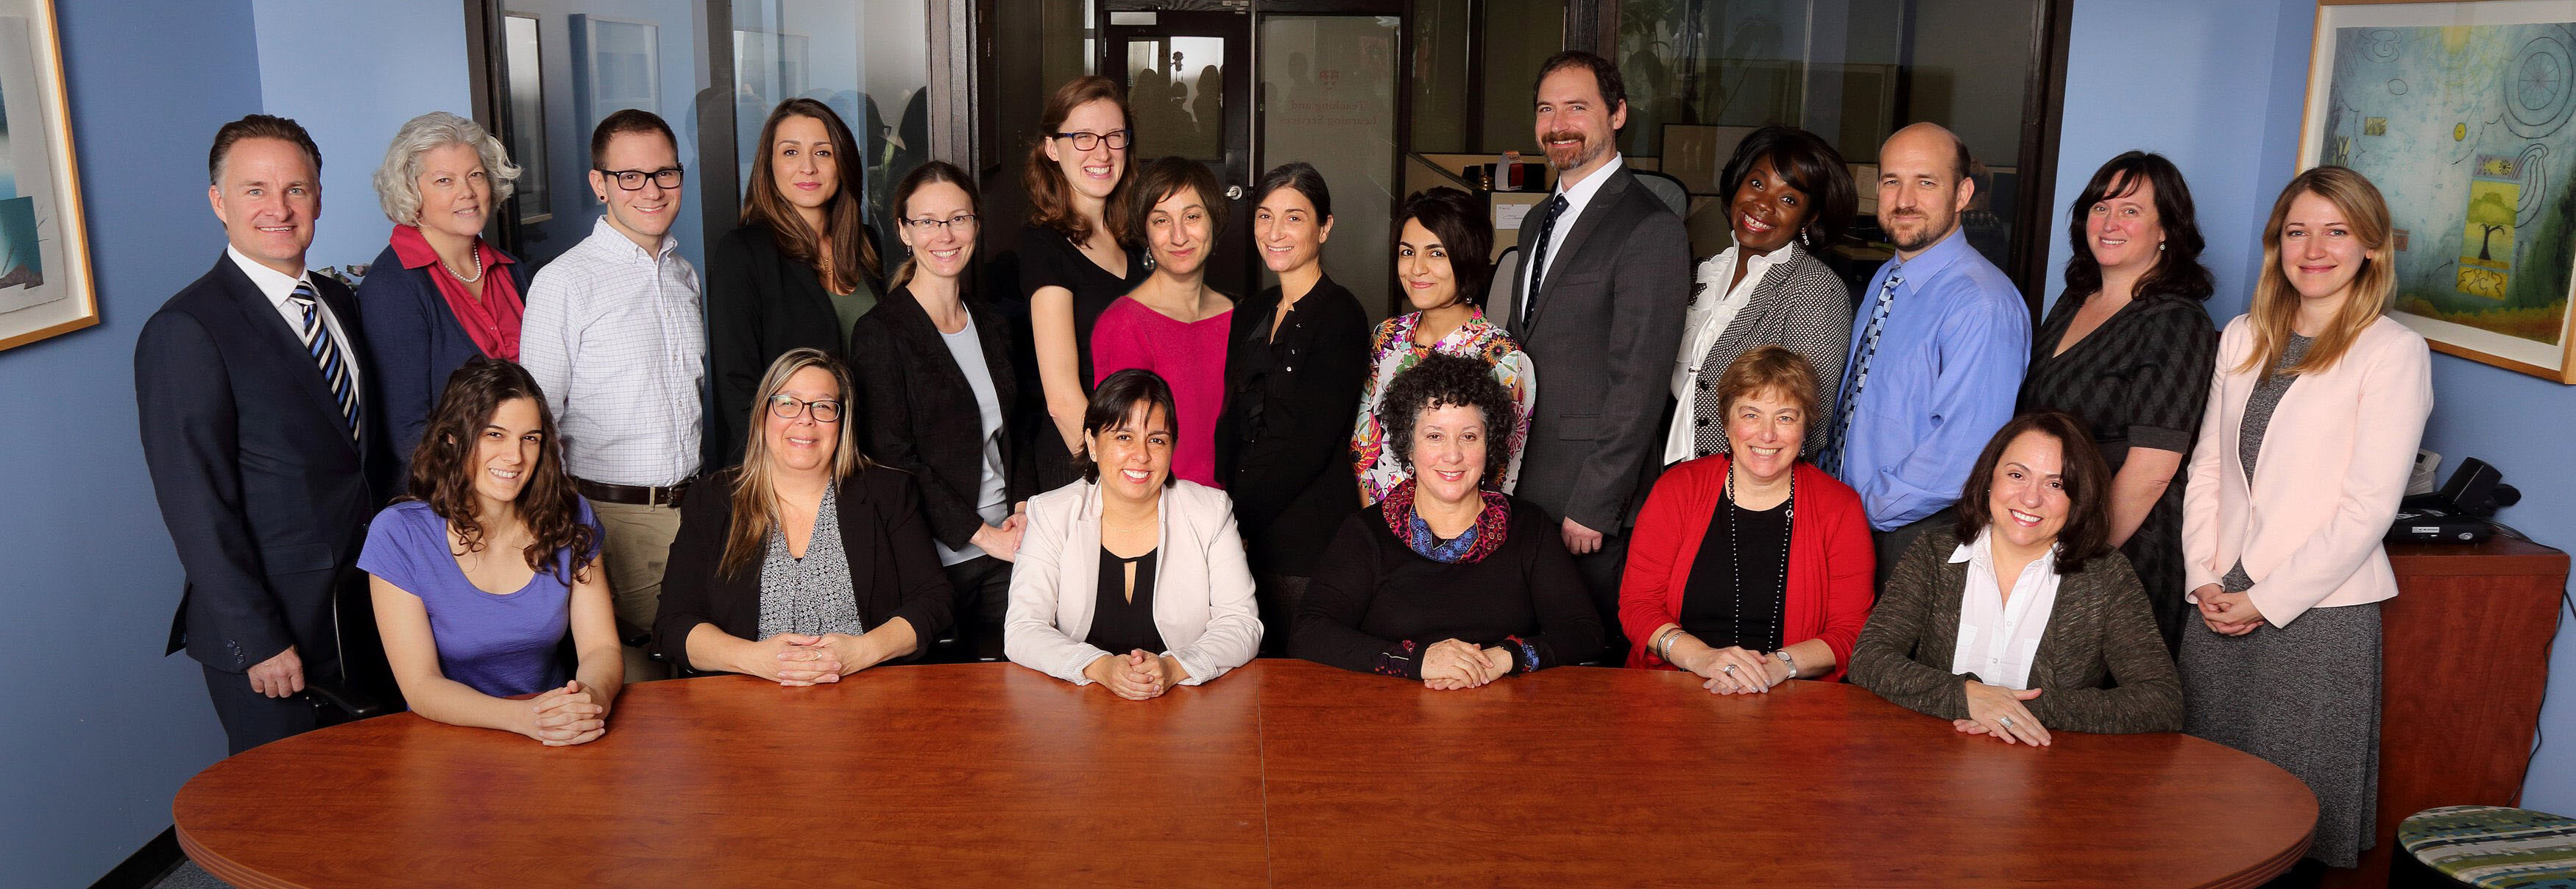 Group photo of TLS staff members